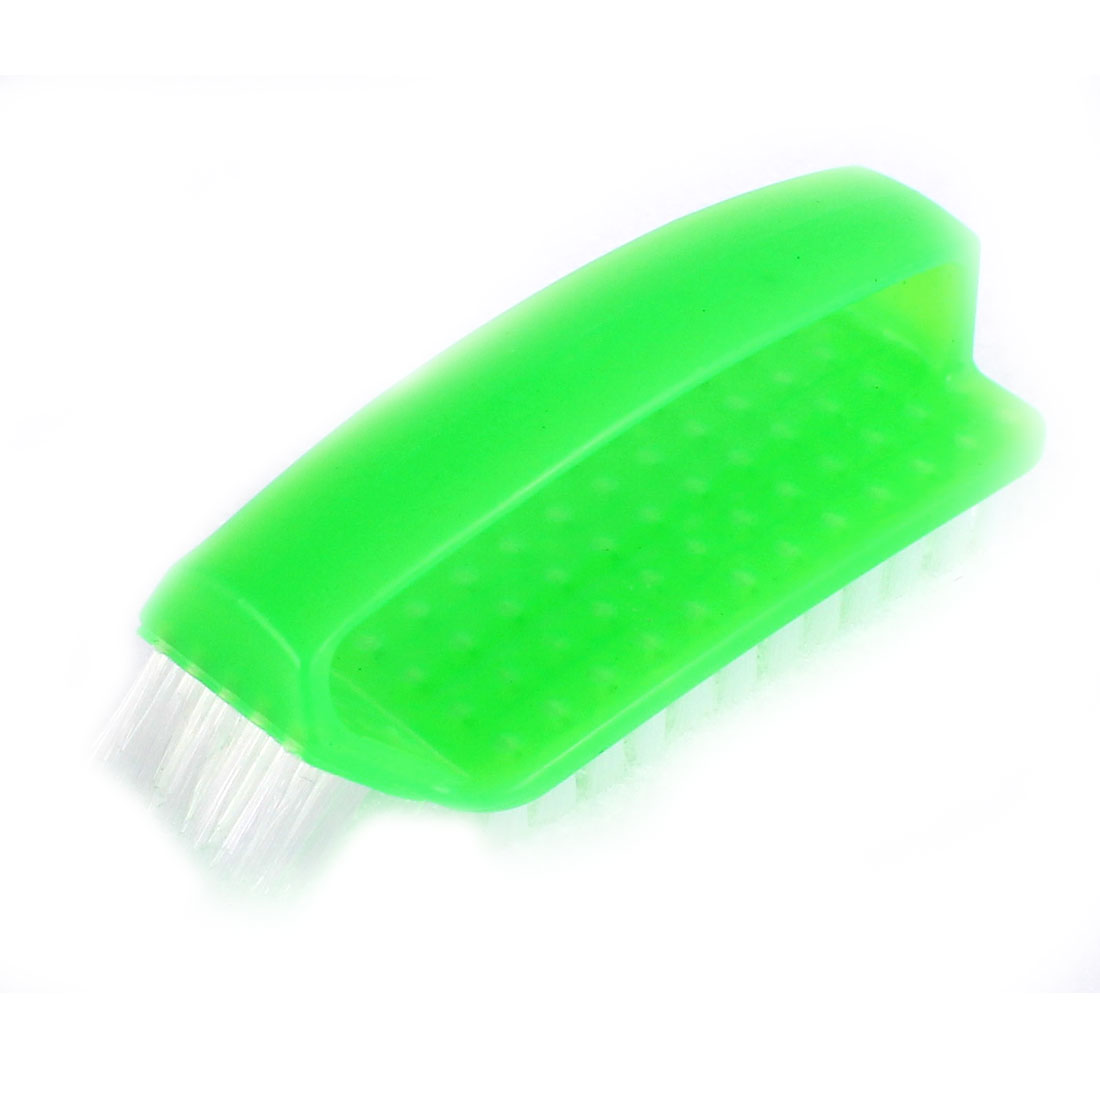 "Clothes Shoes Coat Stain Washing Scrubbing Brush Green 5"" Length"